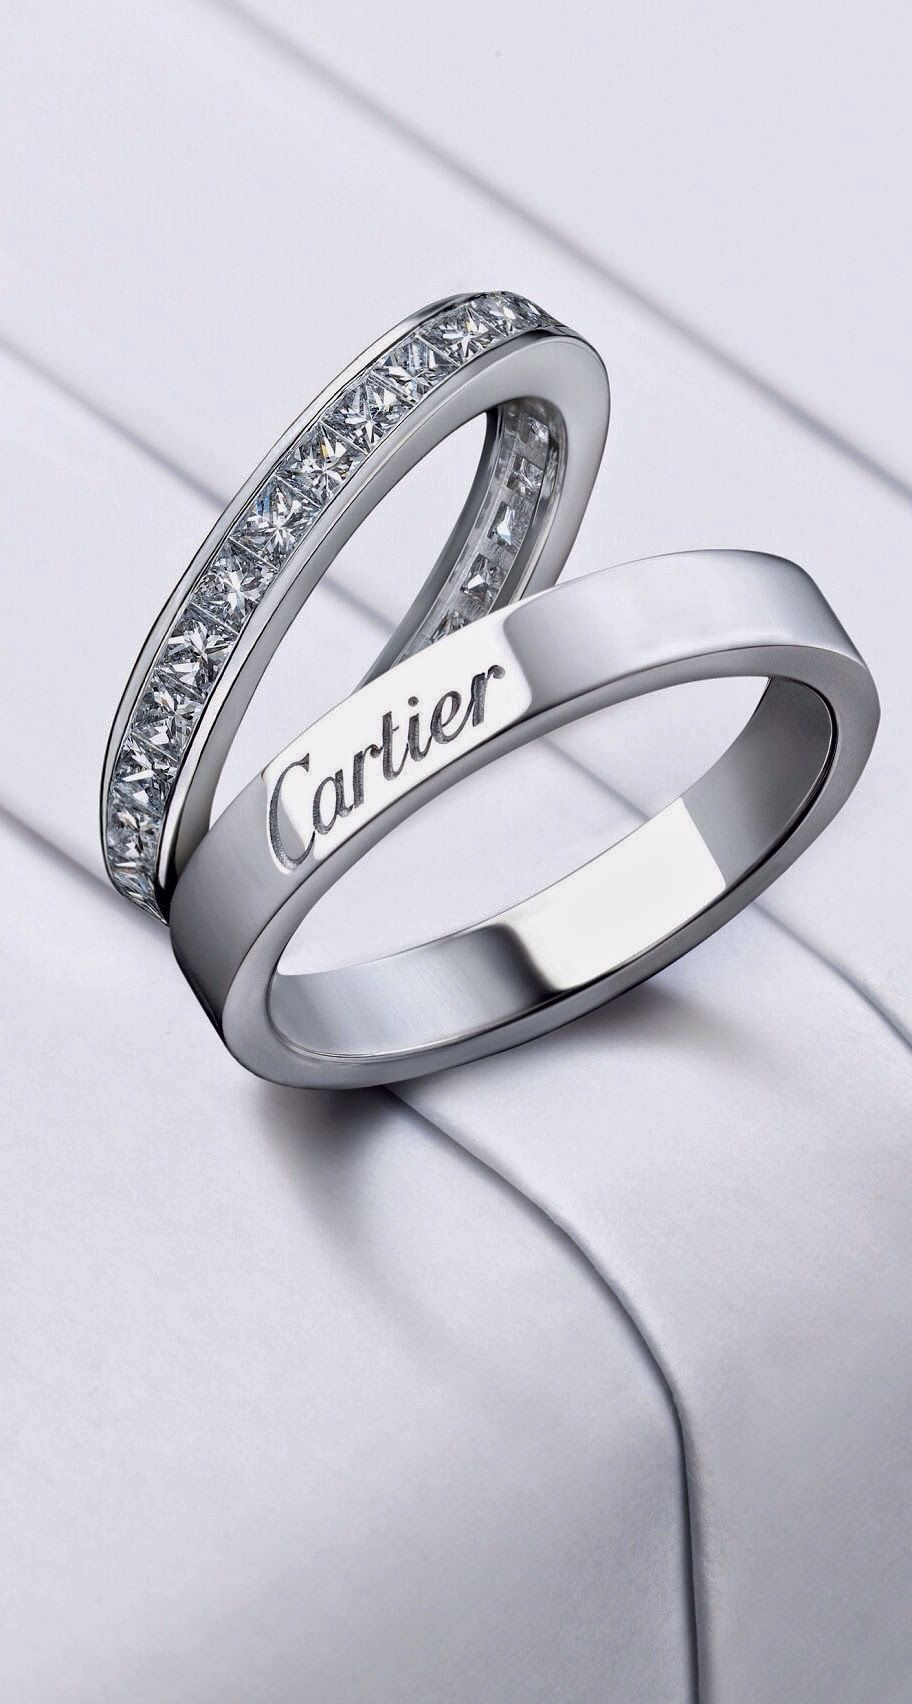 Cartier Wedding Rings